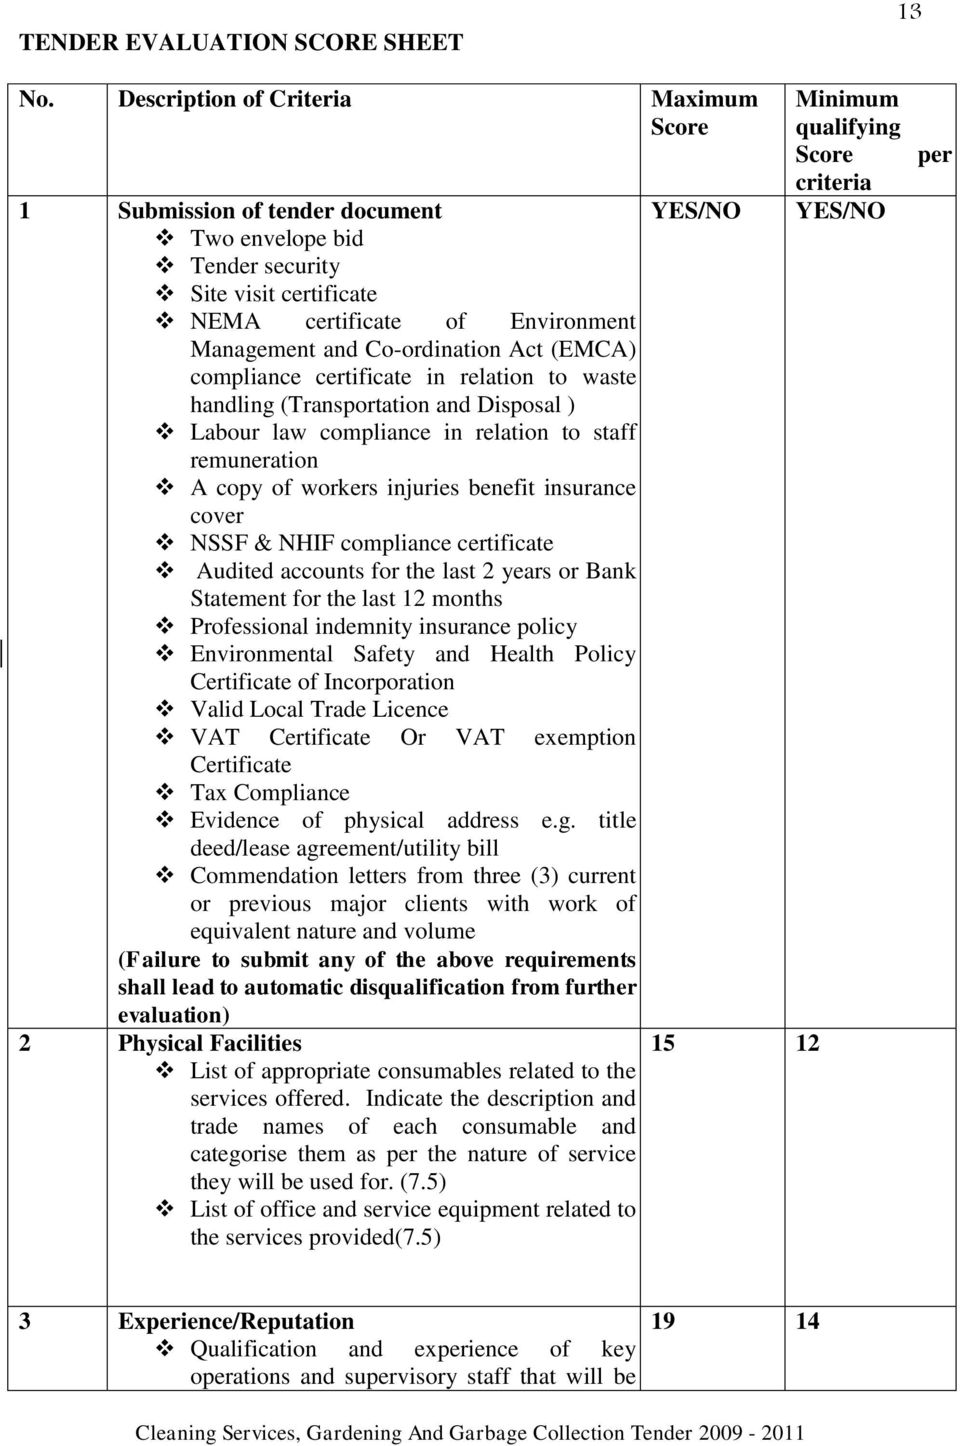 ADM-074 TENDER FOR PROVISION OF CLEANING SERVICES, GARDENING AND